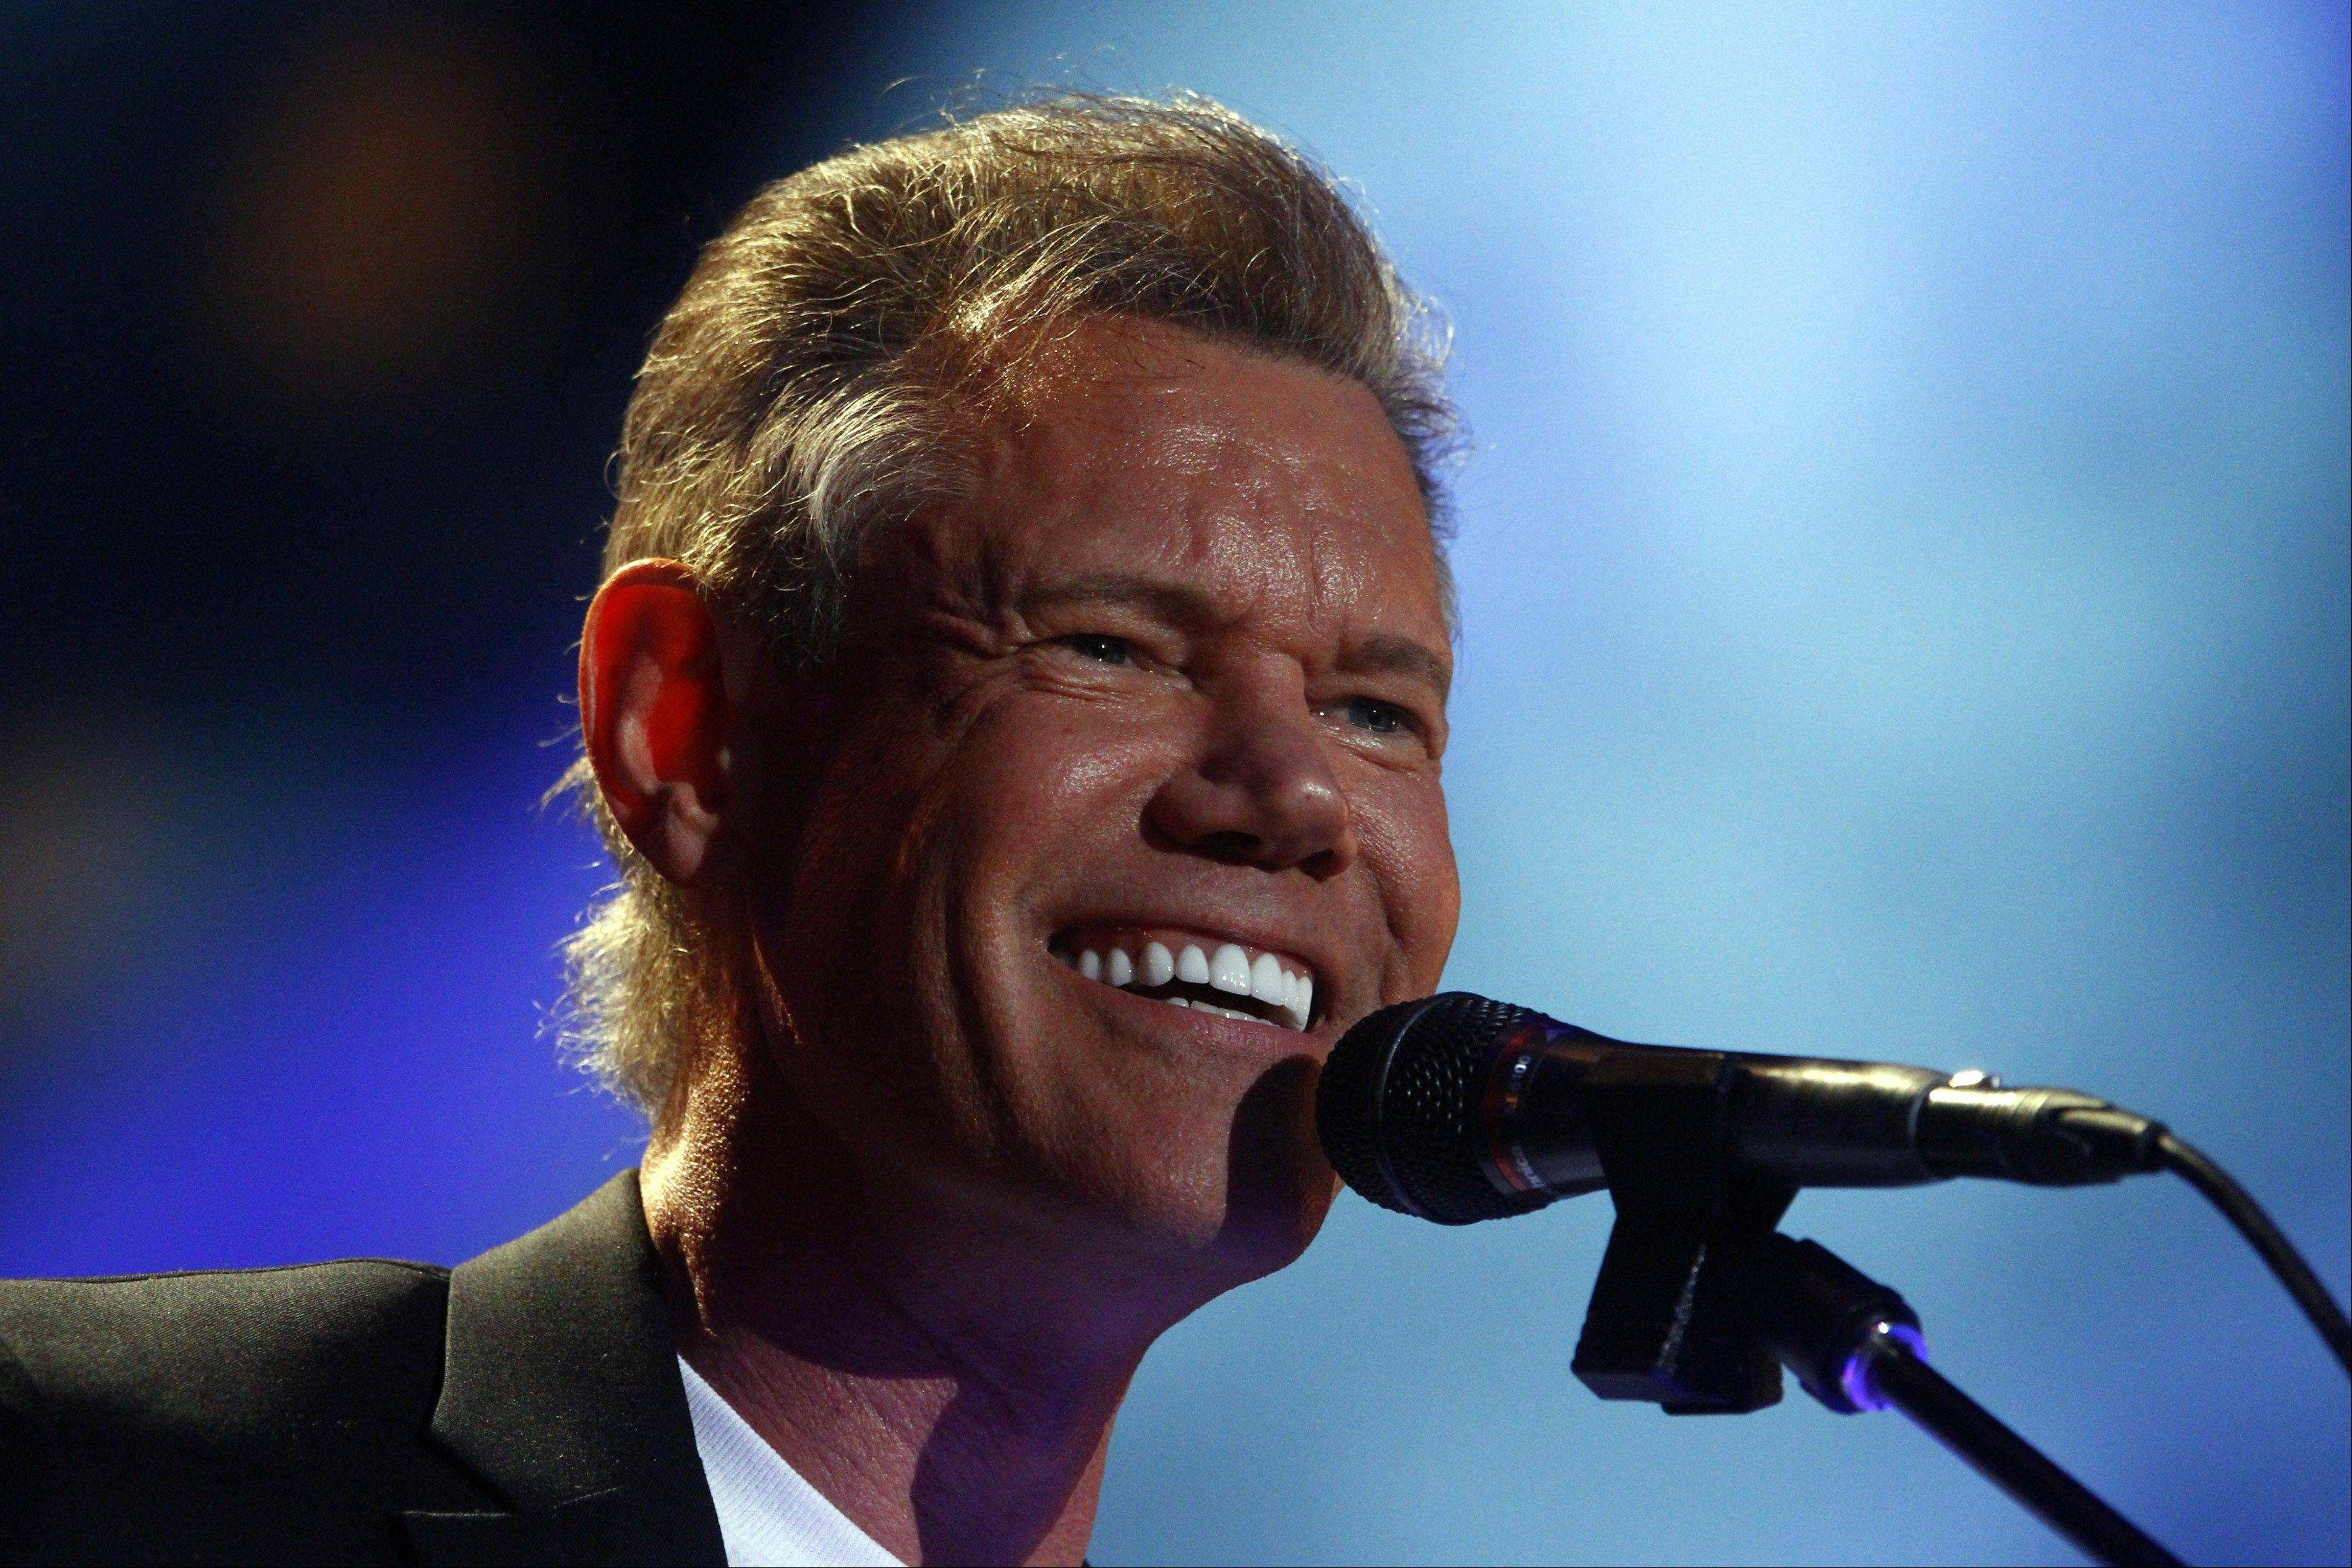 Randy Travis' publicist said Wednesday the 54-year-old Travis is in surgery after suffering a stroke while he was being treated for congestive heart failure because of a viral illness.